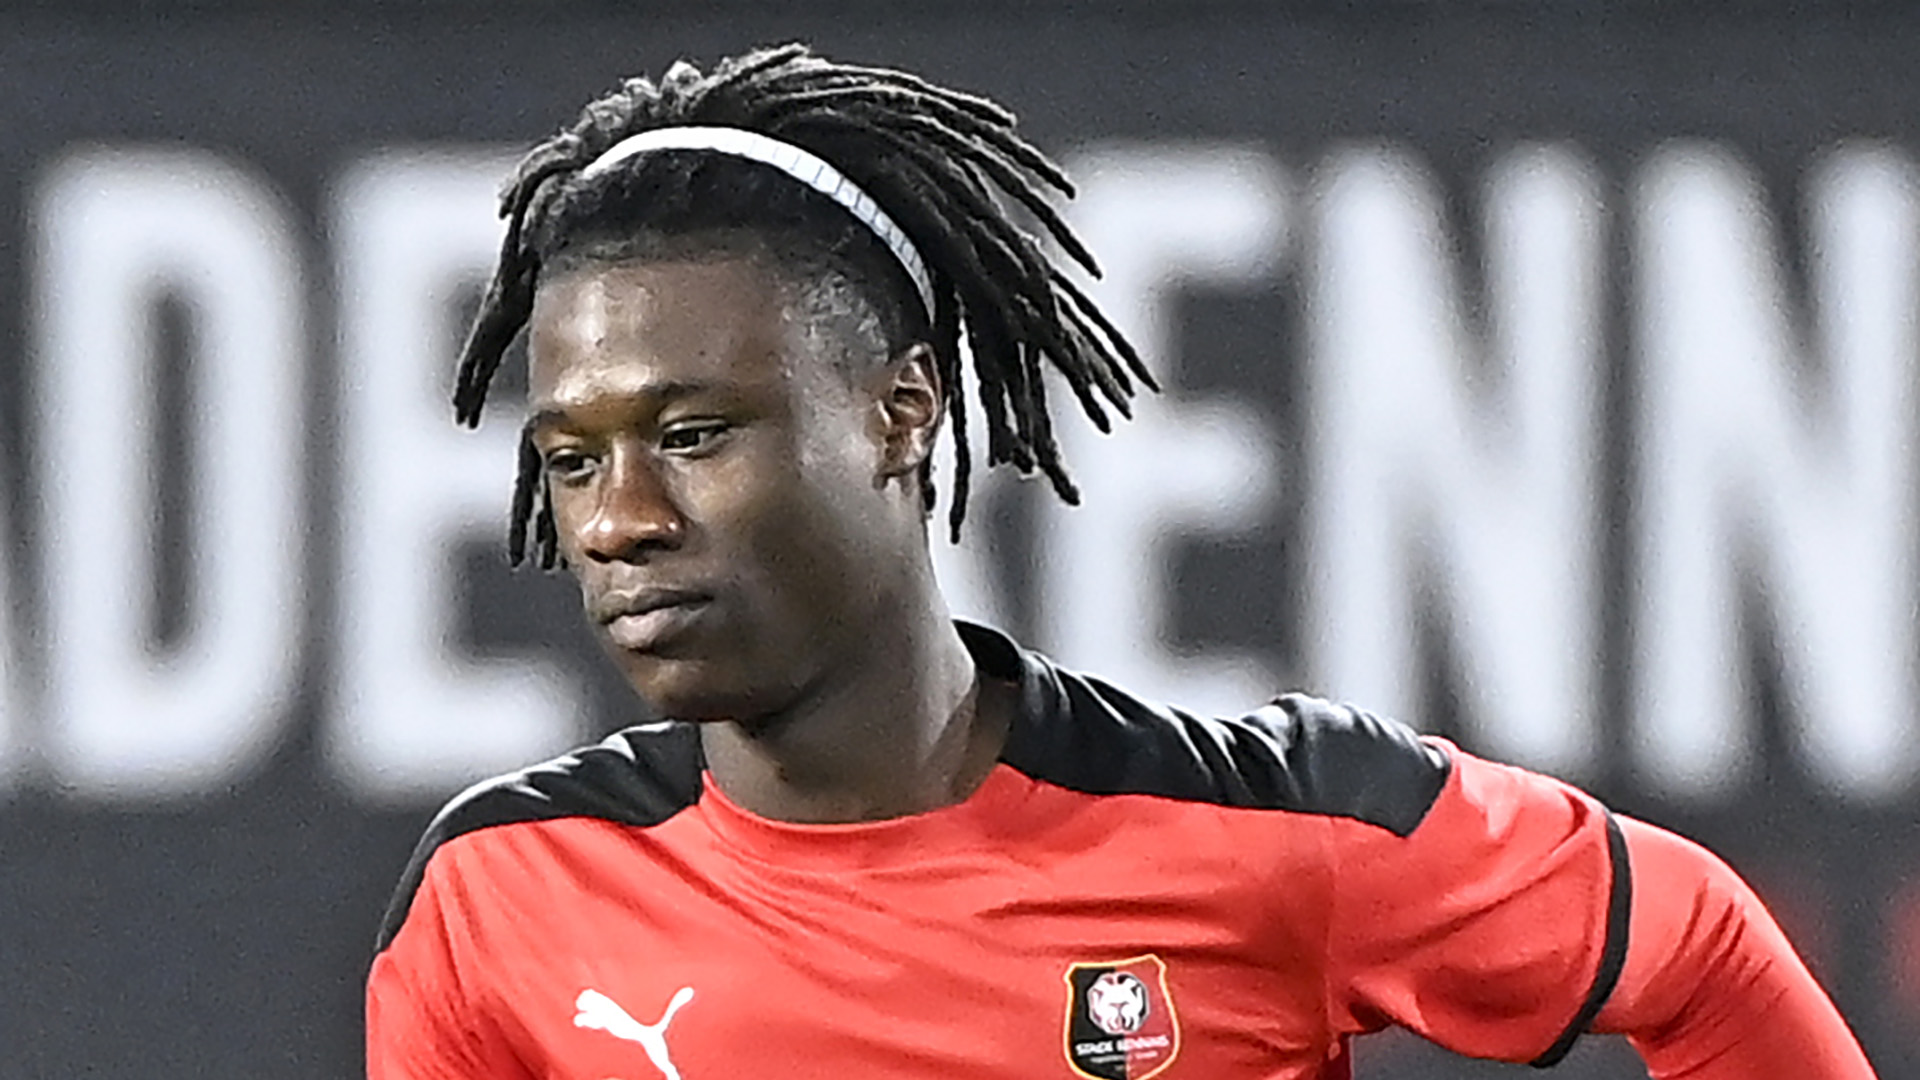 Real Madrid-linked Camavinga coy on long-term Rennes future as speculation swirls around France starlet